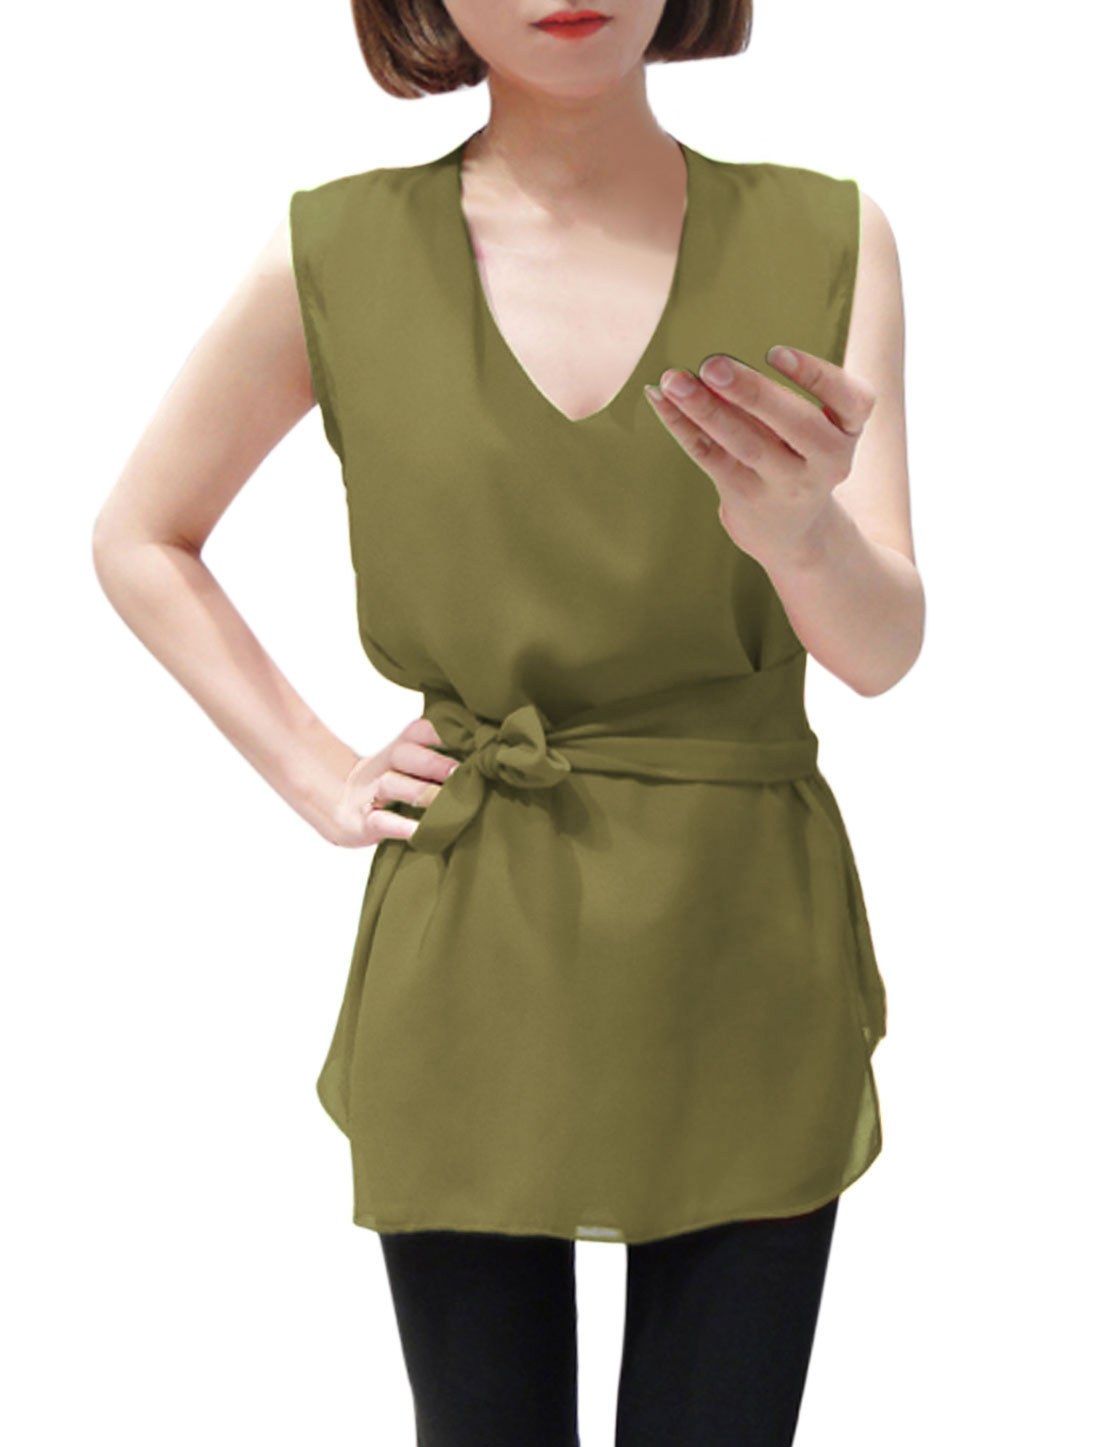 Lady Stylish Chiffon Top w Self-Tie Waist Strap Olive Green XS